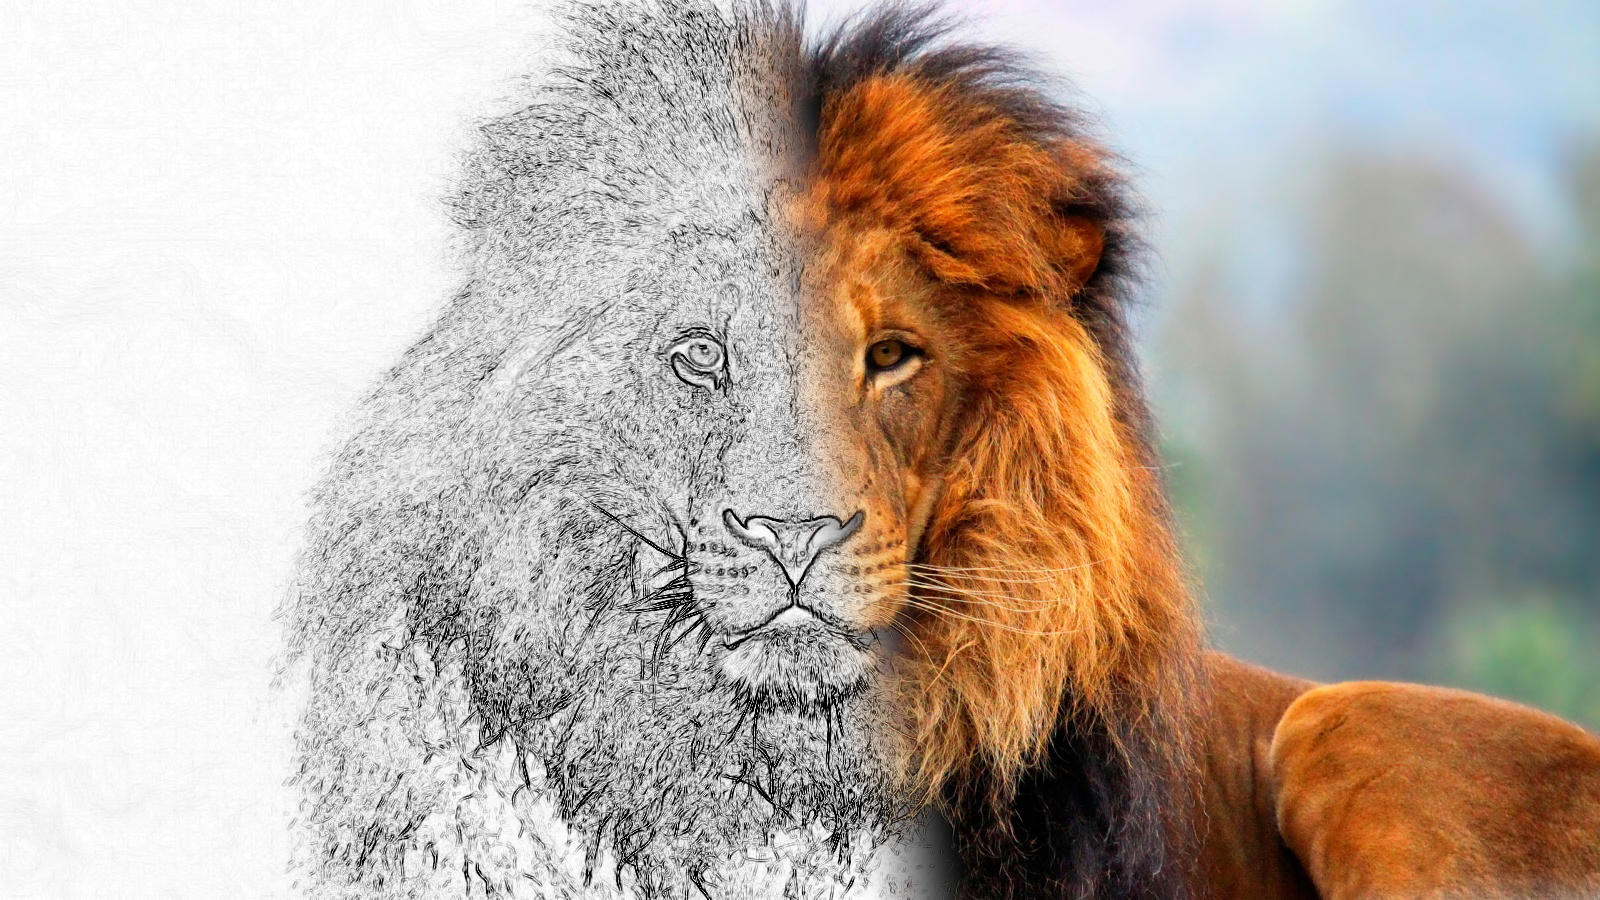 Transition from photo to sketchphotoshop tutorial photoshop lion 600x337 transition from photo to sketchphotoshop tutorial baditri Image collections